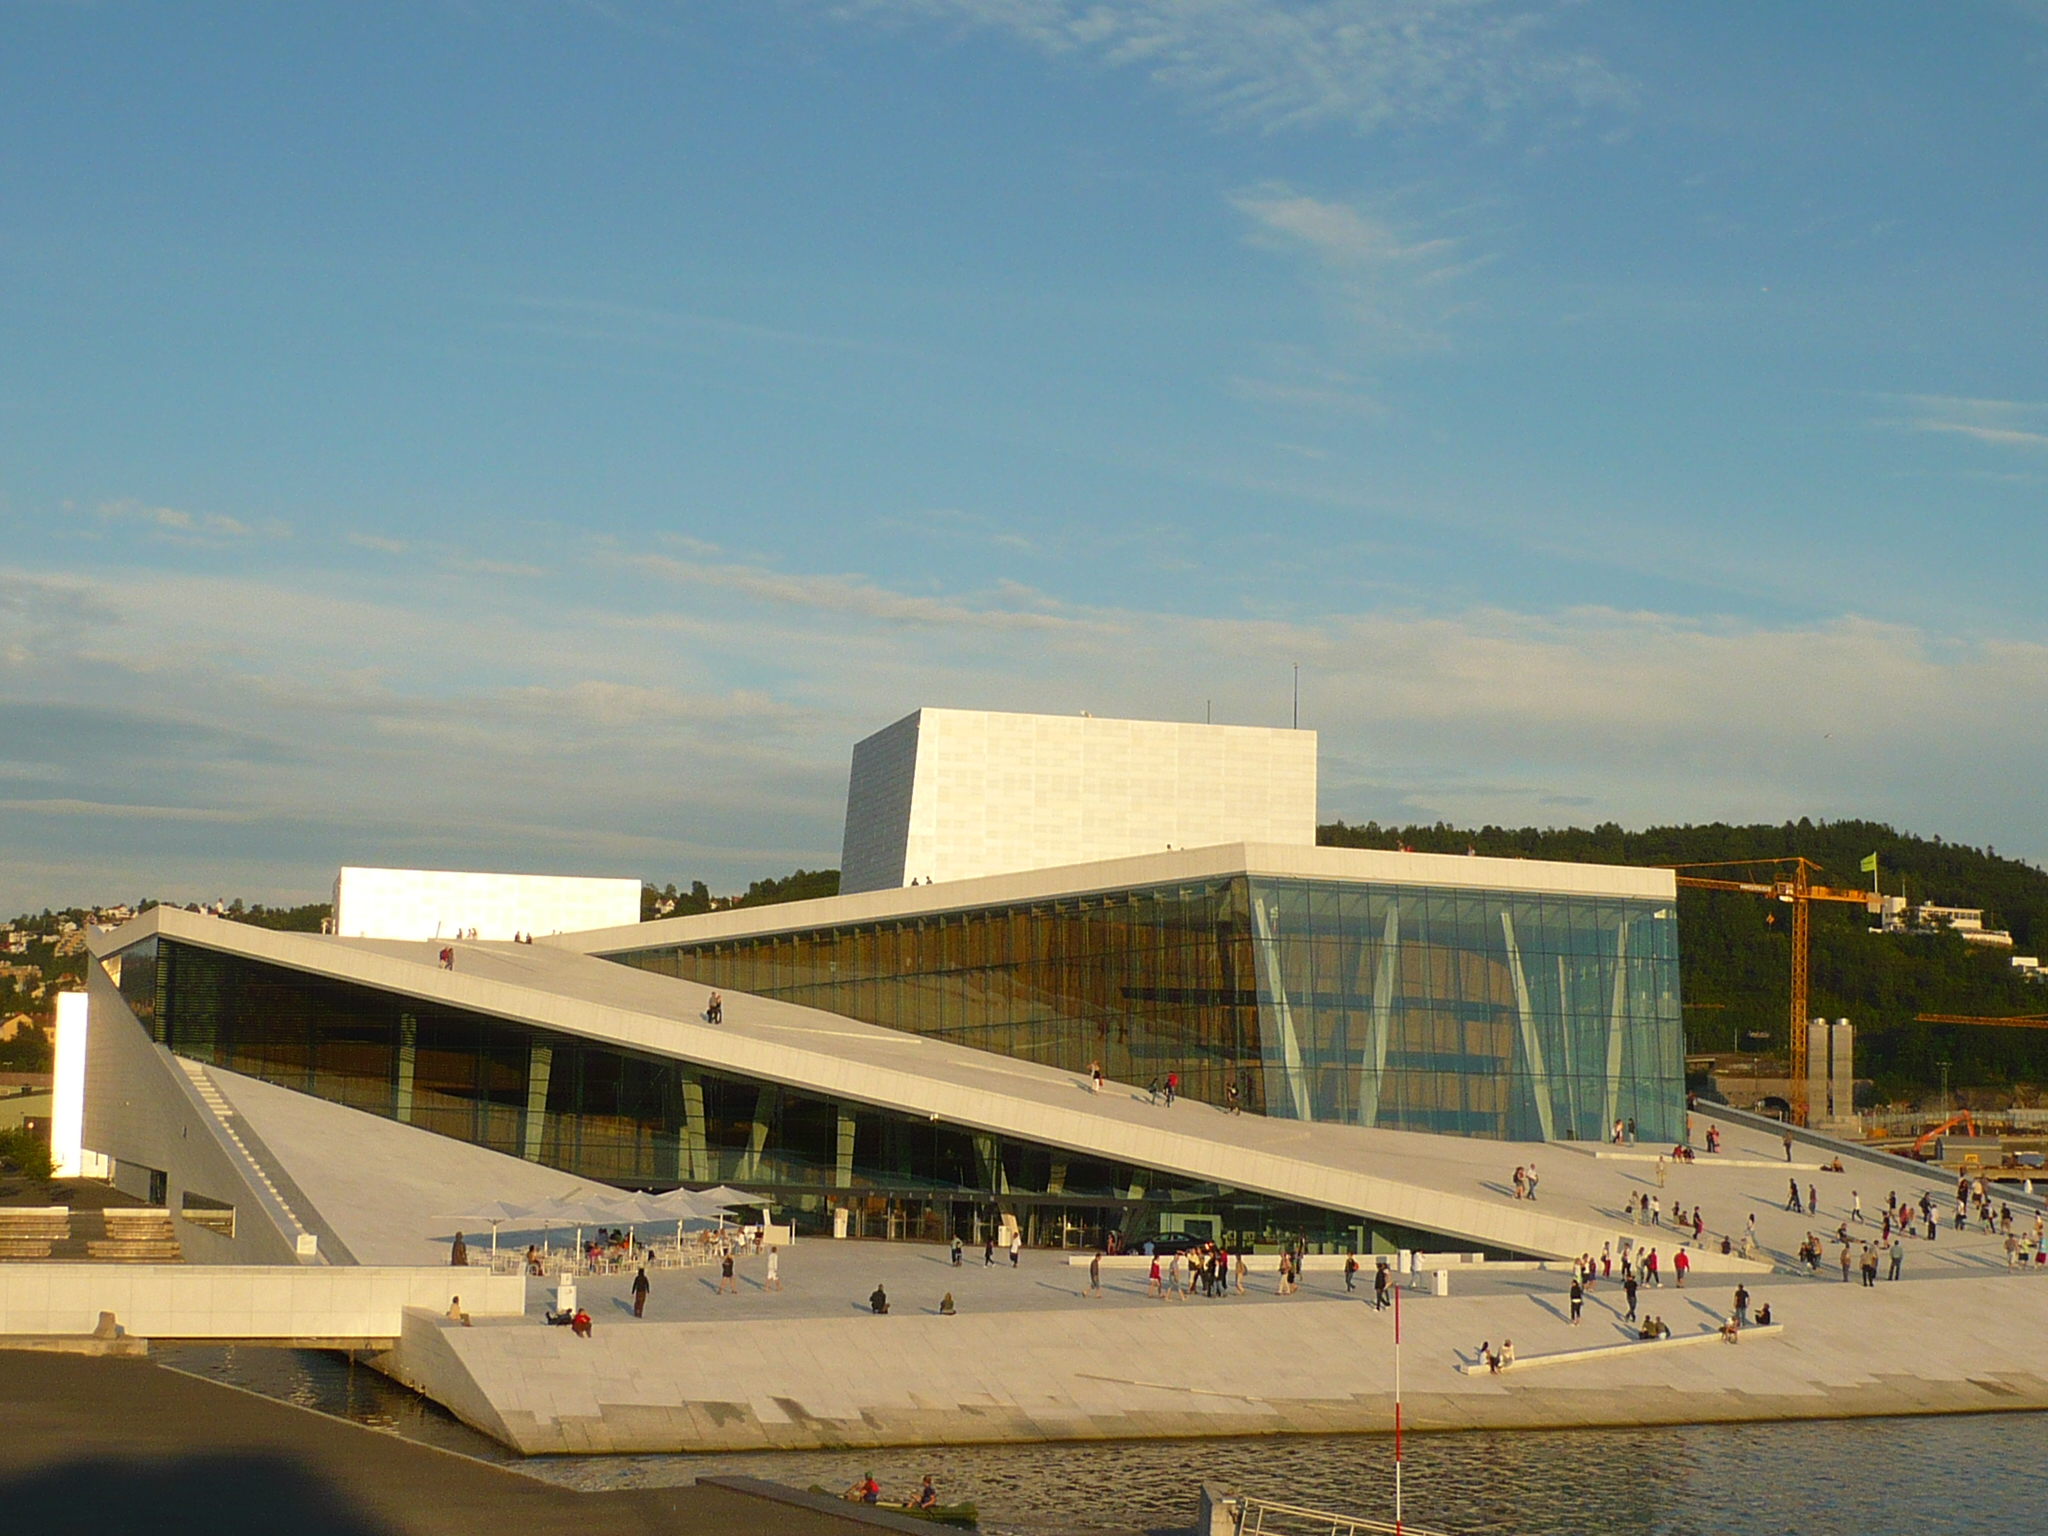 Oslo - The Opera House